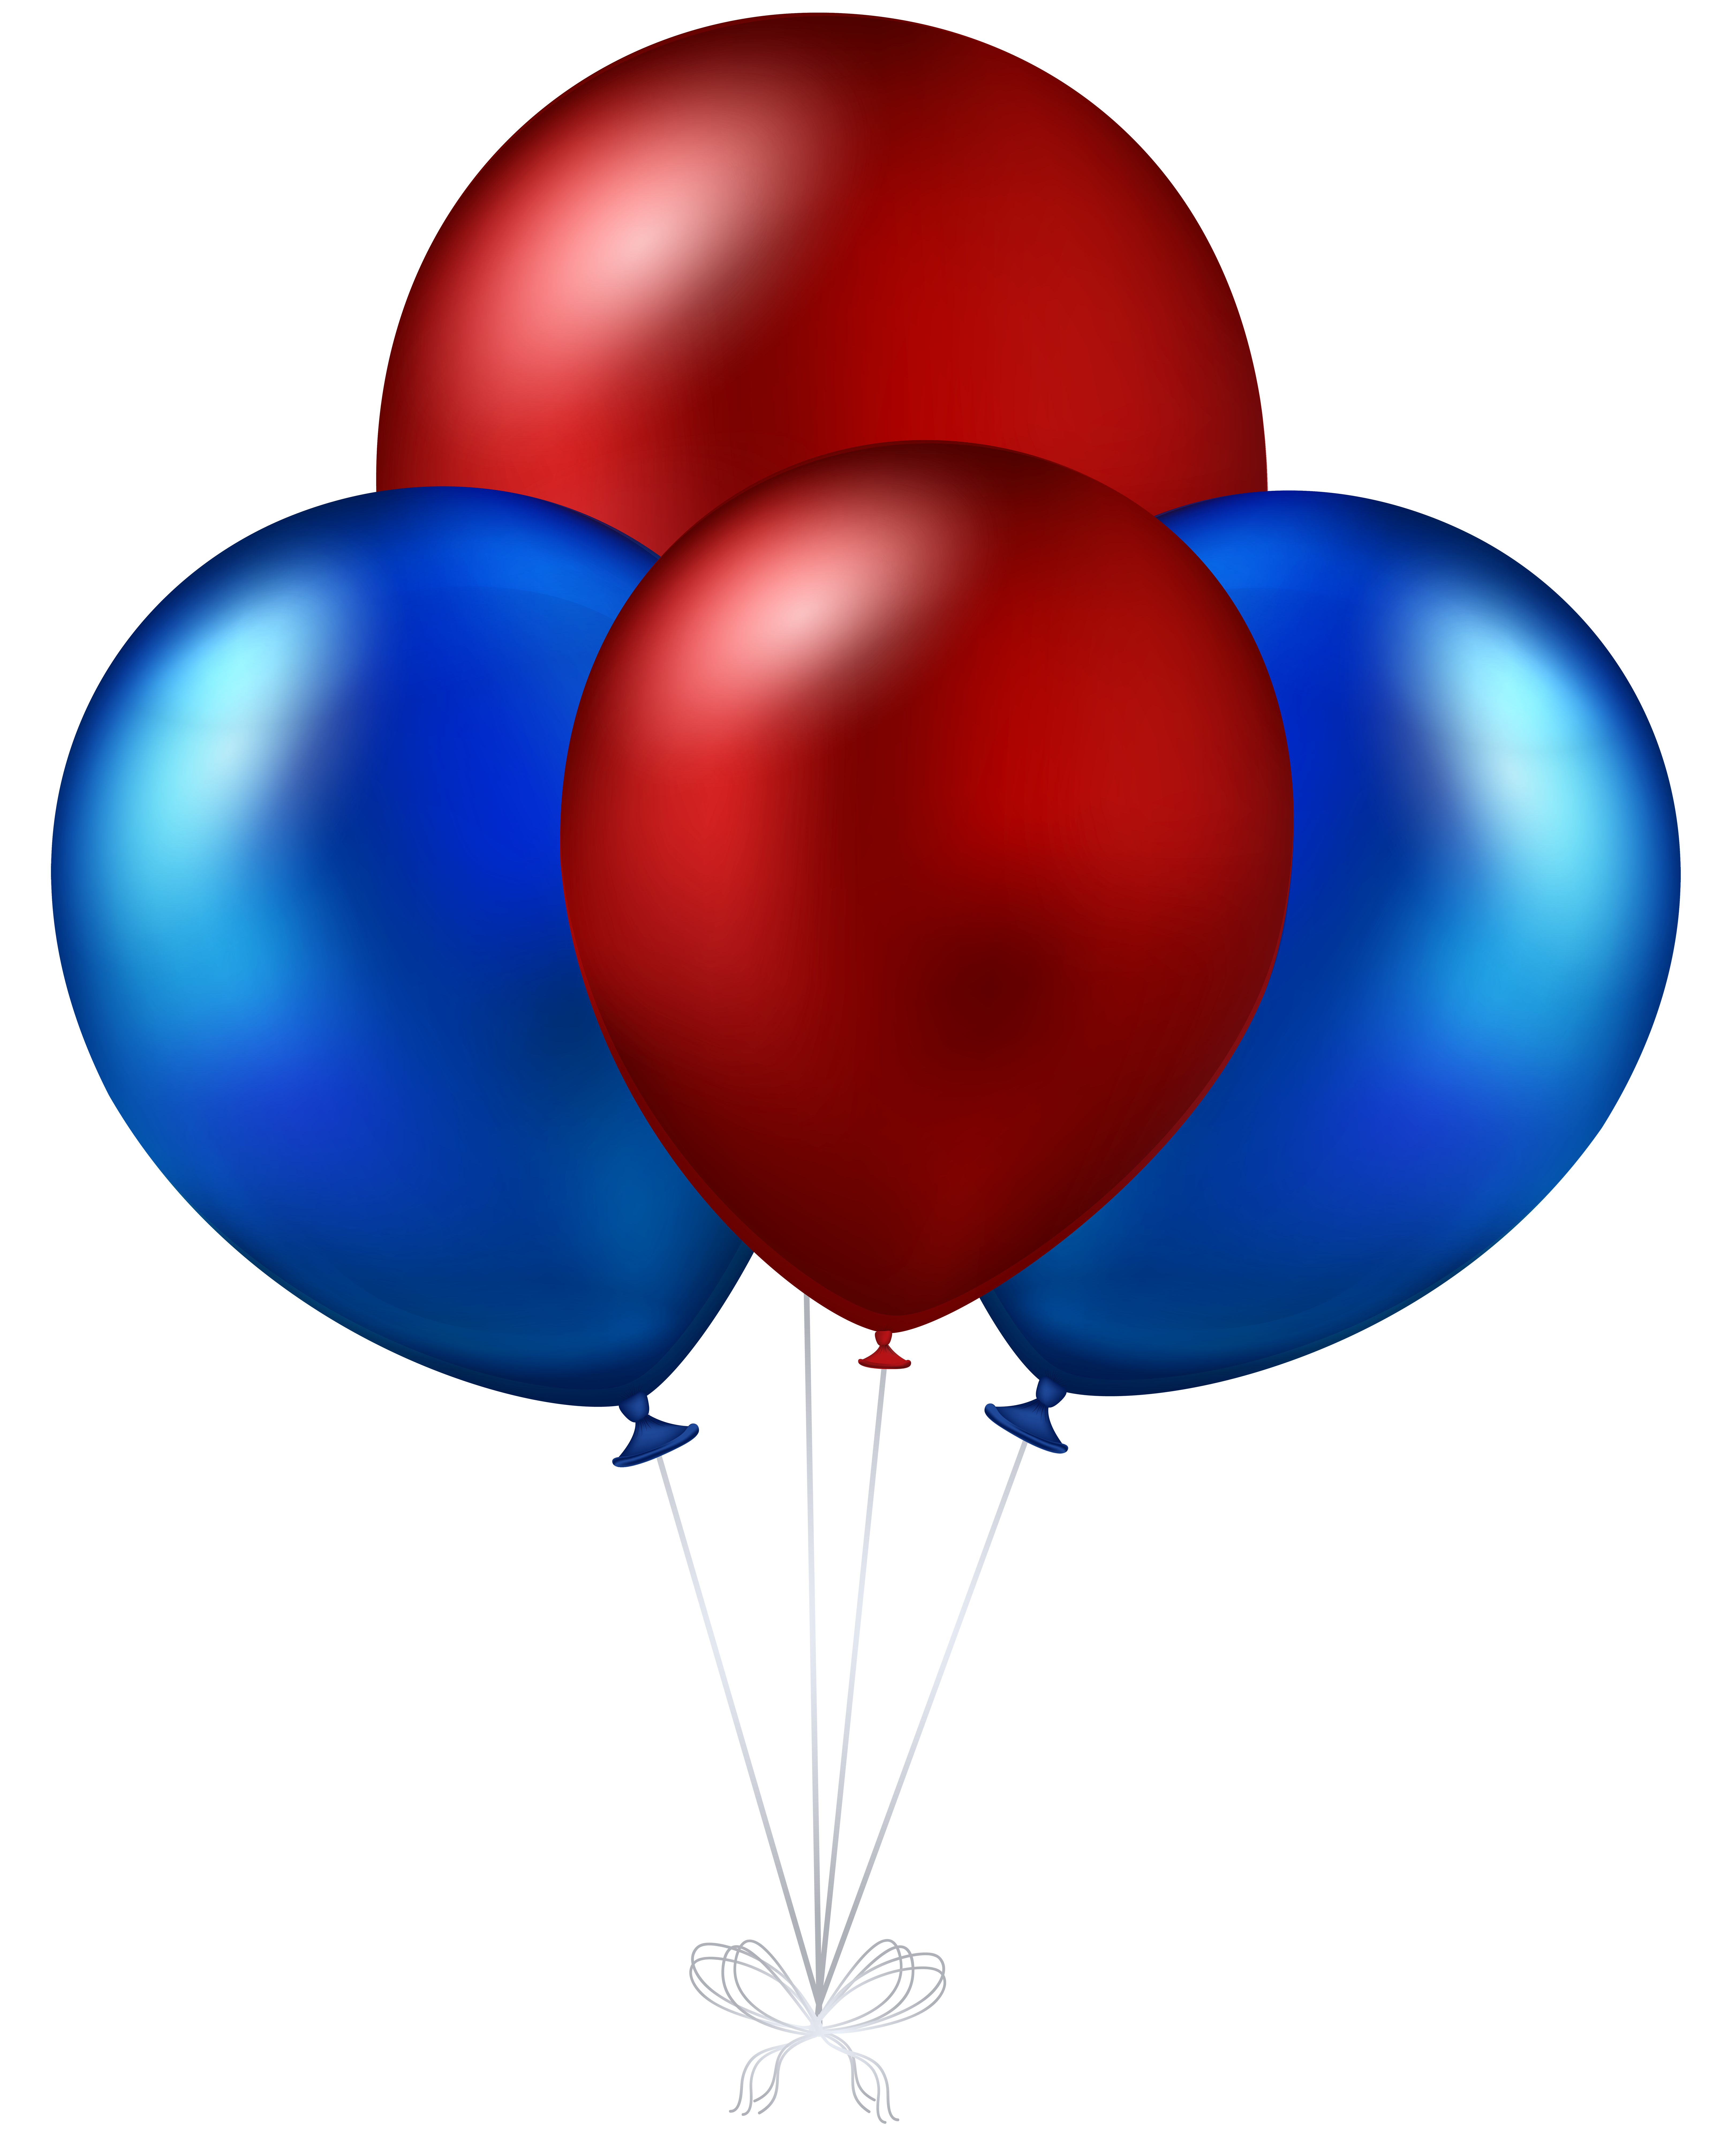 Clipart balloon royal blue. Water red amazon com